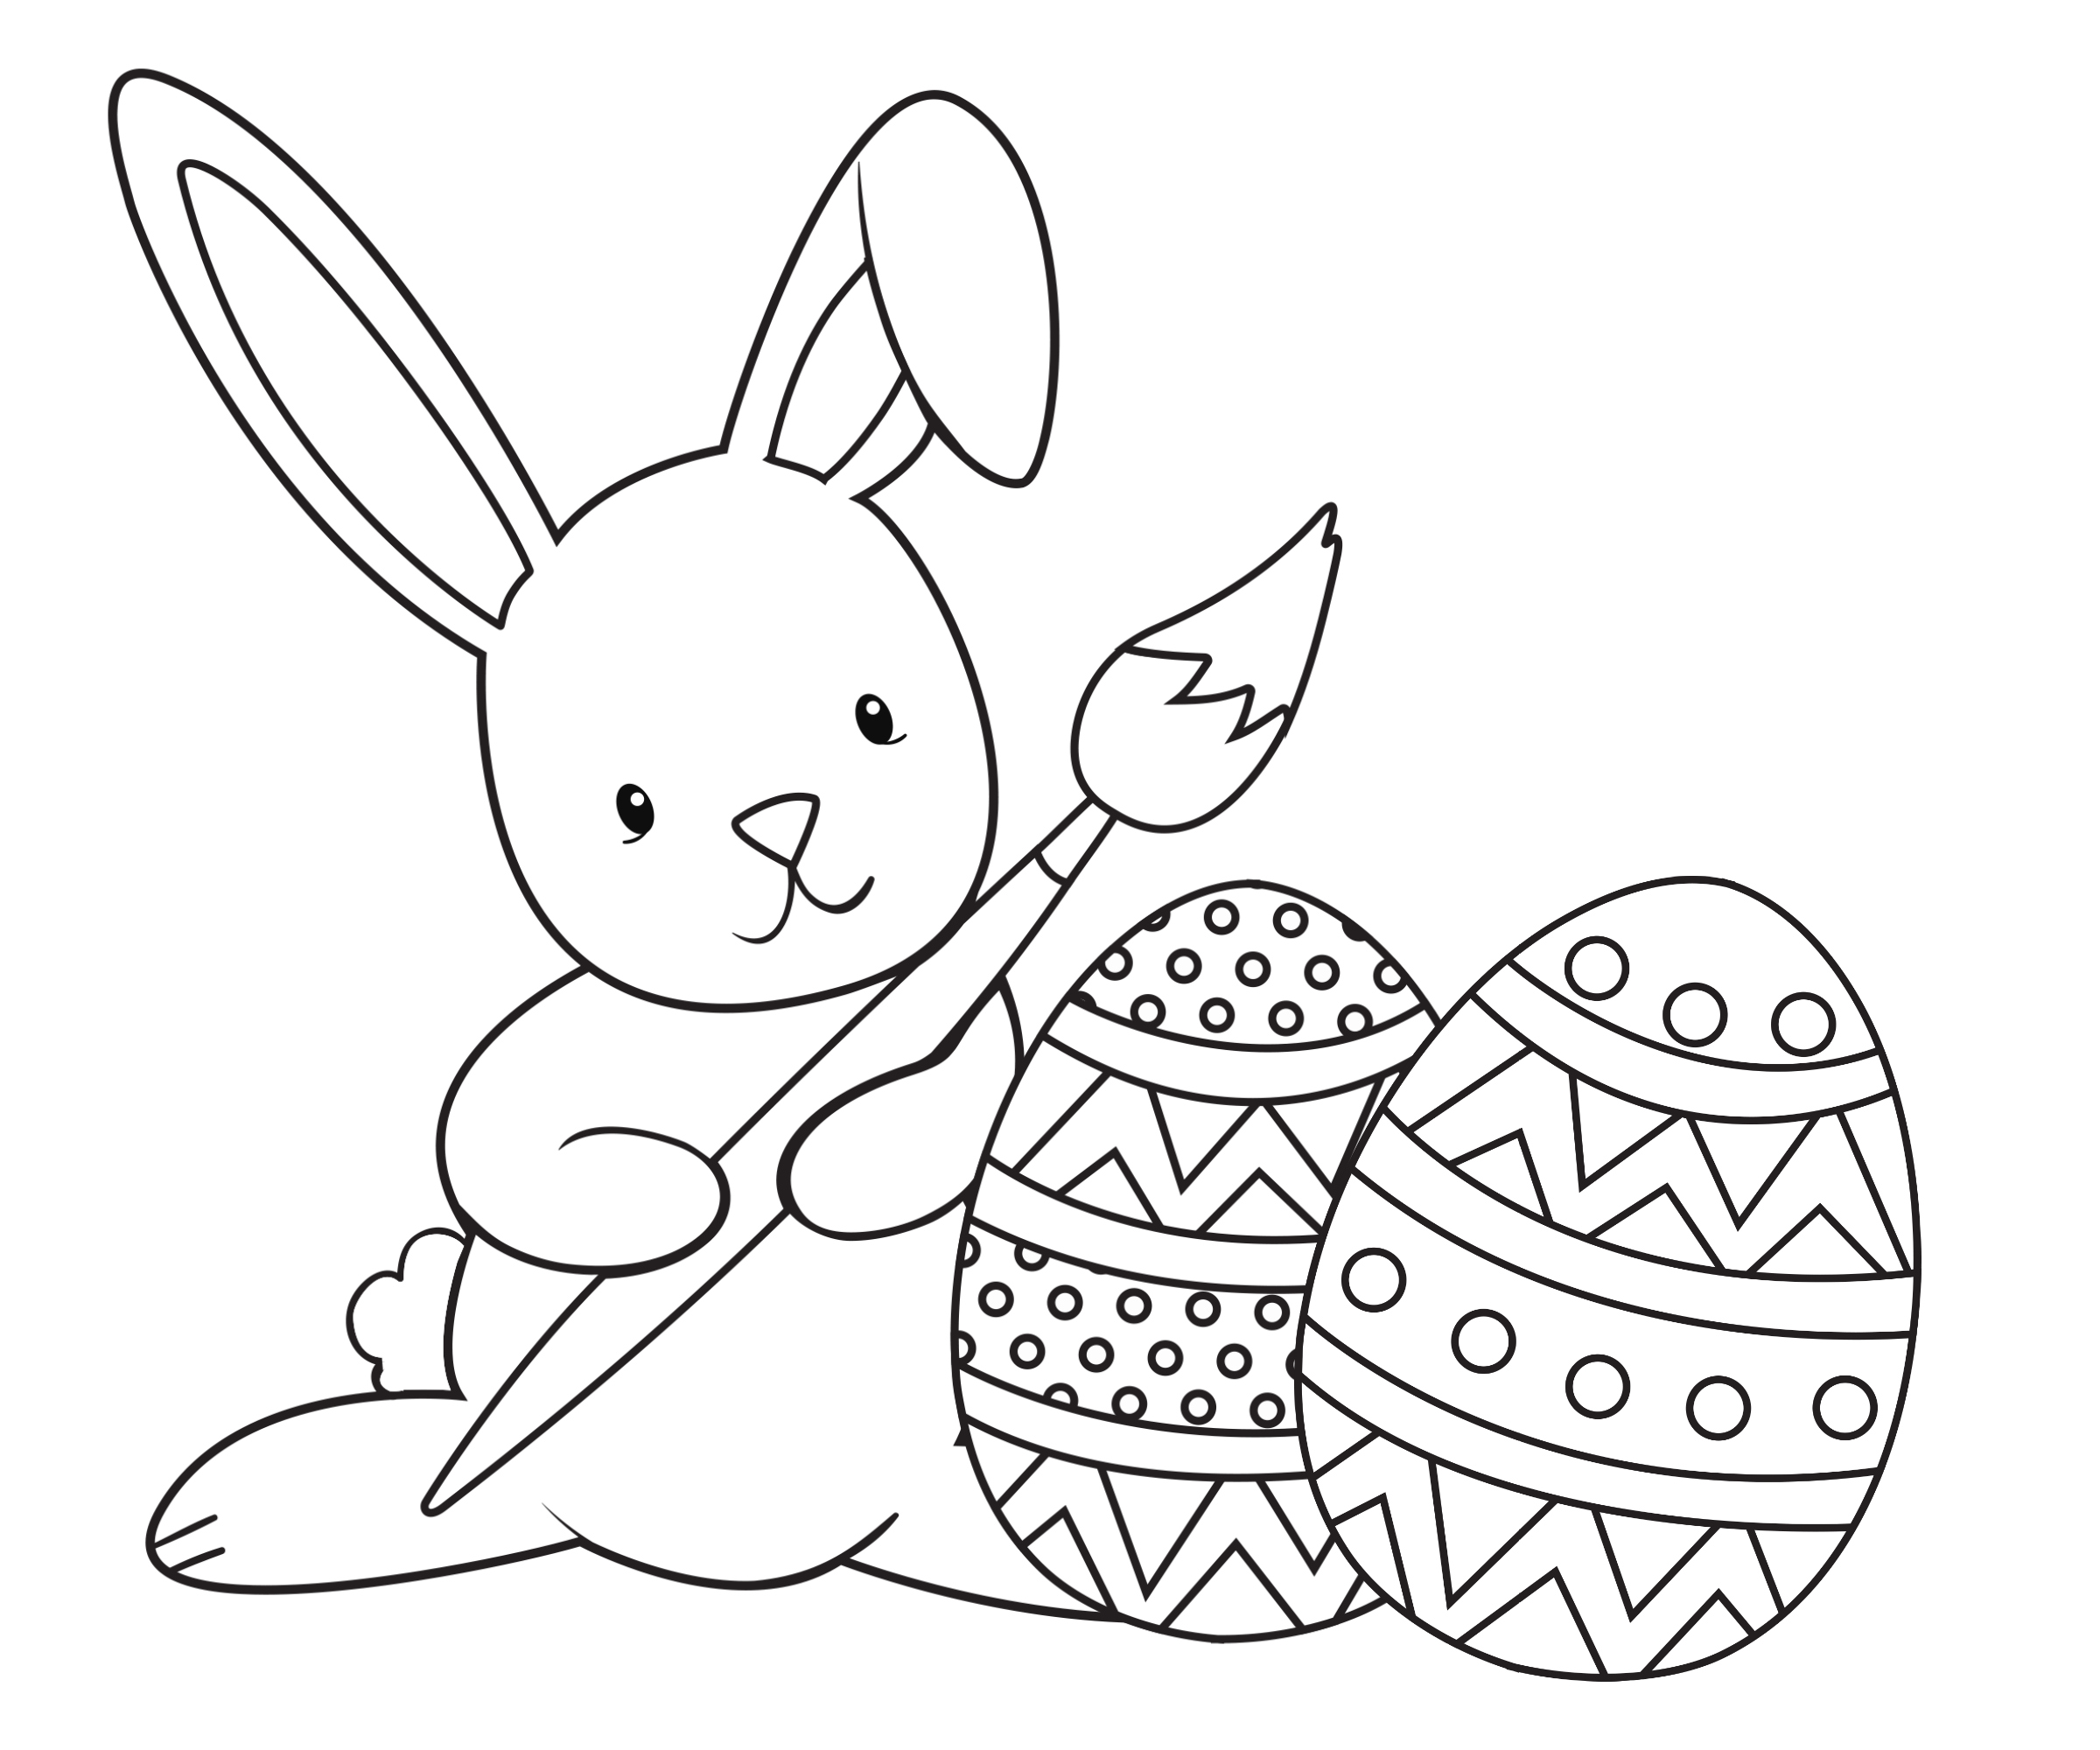 coloring pages easter - photo#5